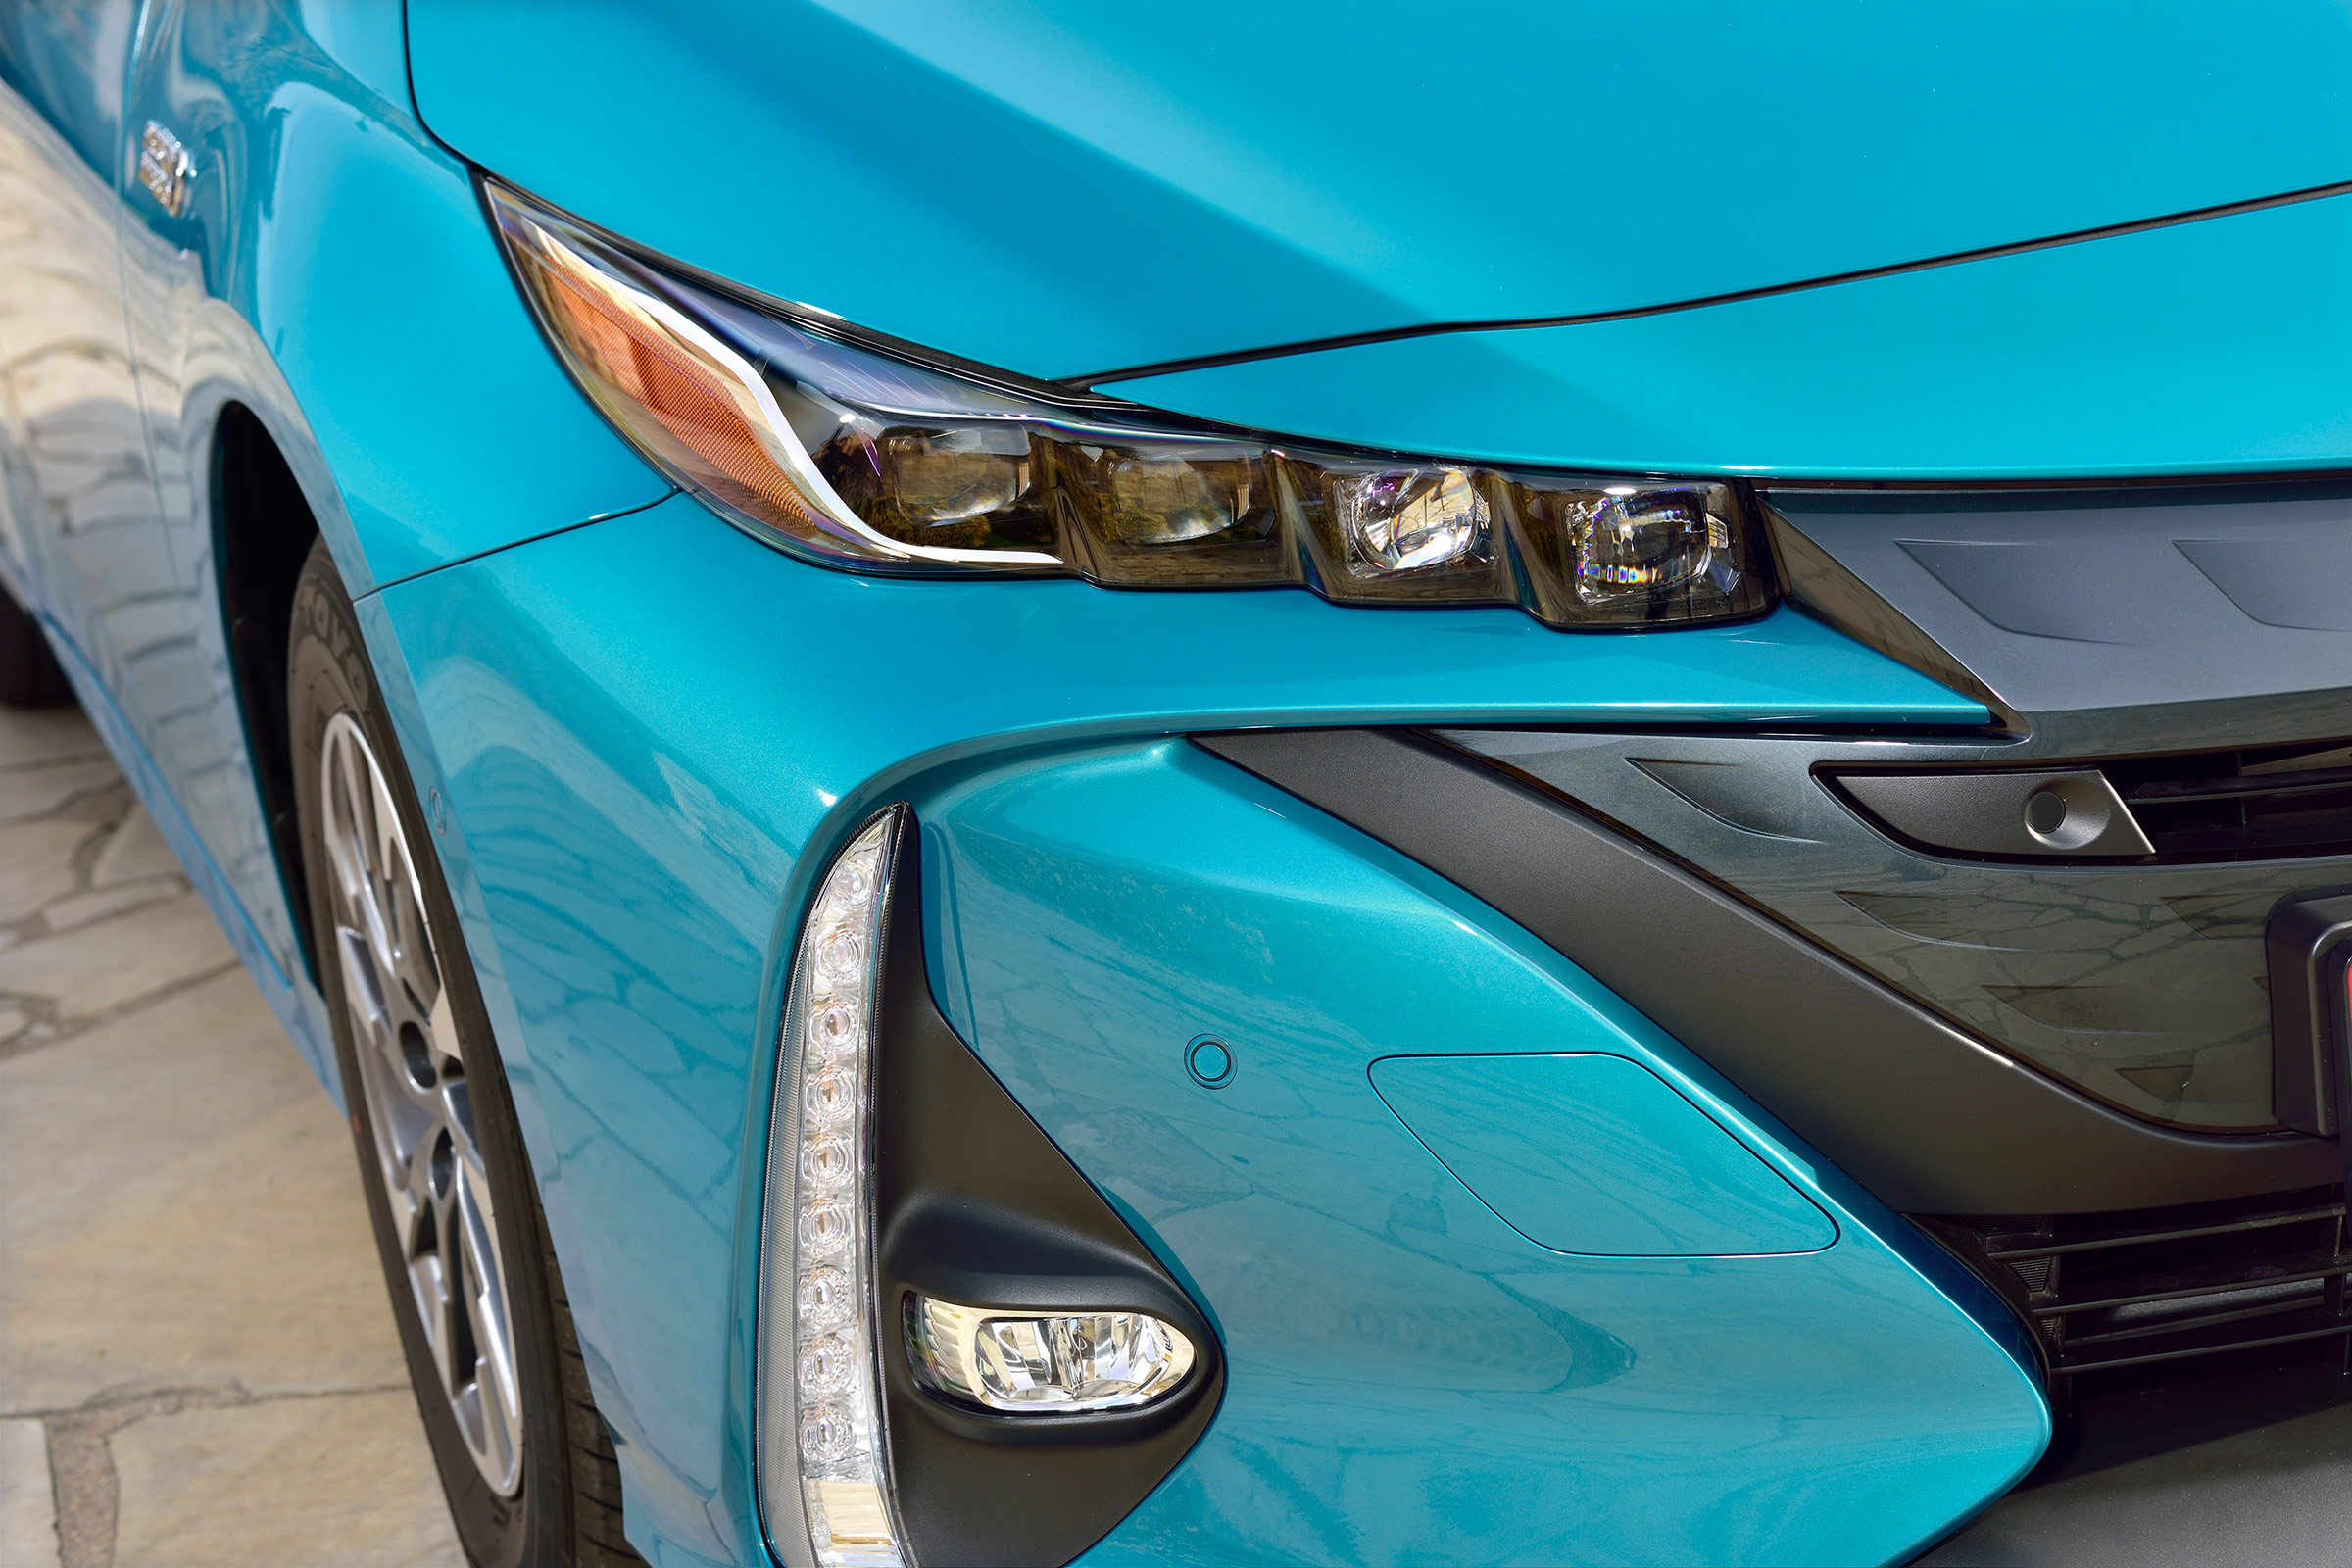 2017 Toyota Prius Blue Exterior View Headlight (Photo 3 of 64)